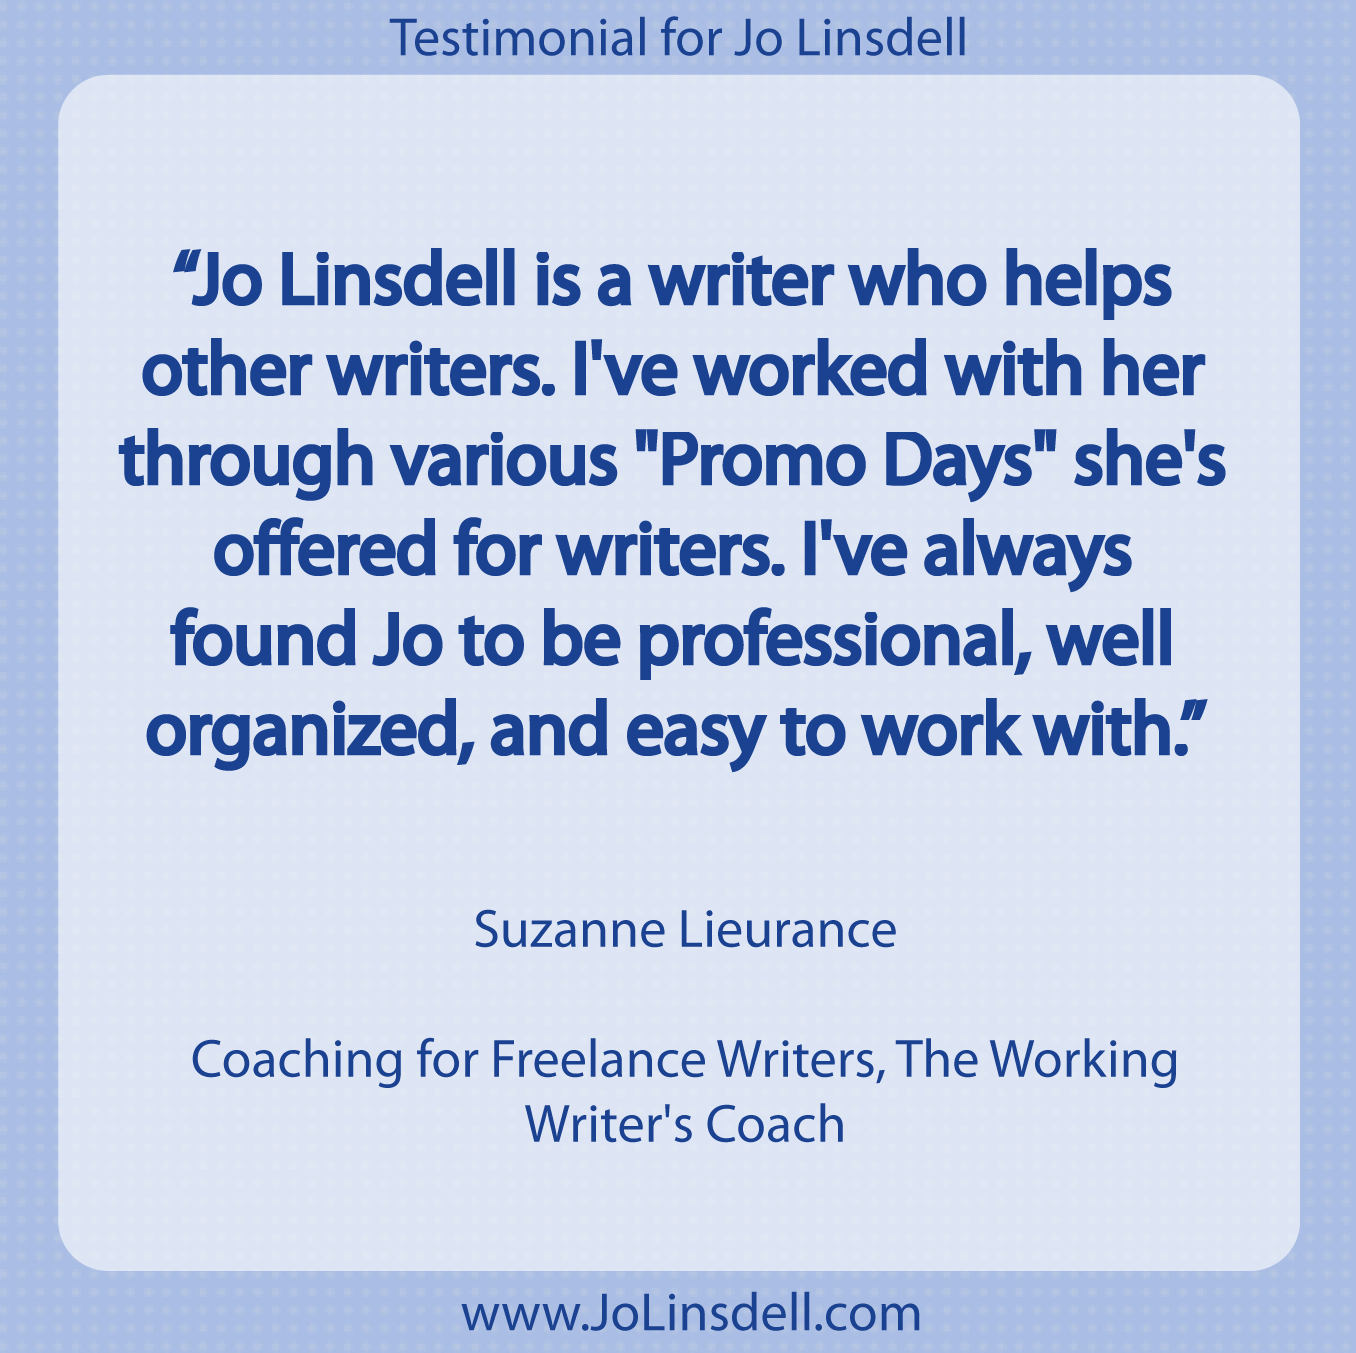 Testimonial for Jo Linsdell by Suzanne Lieurance